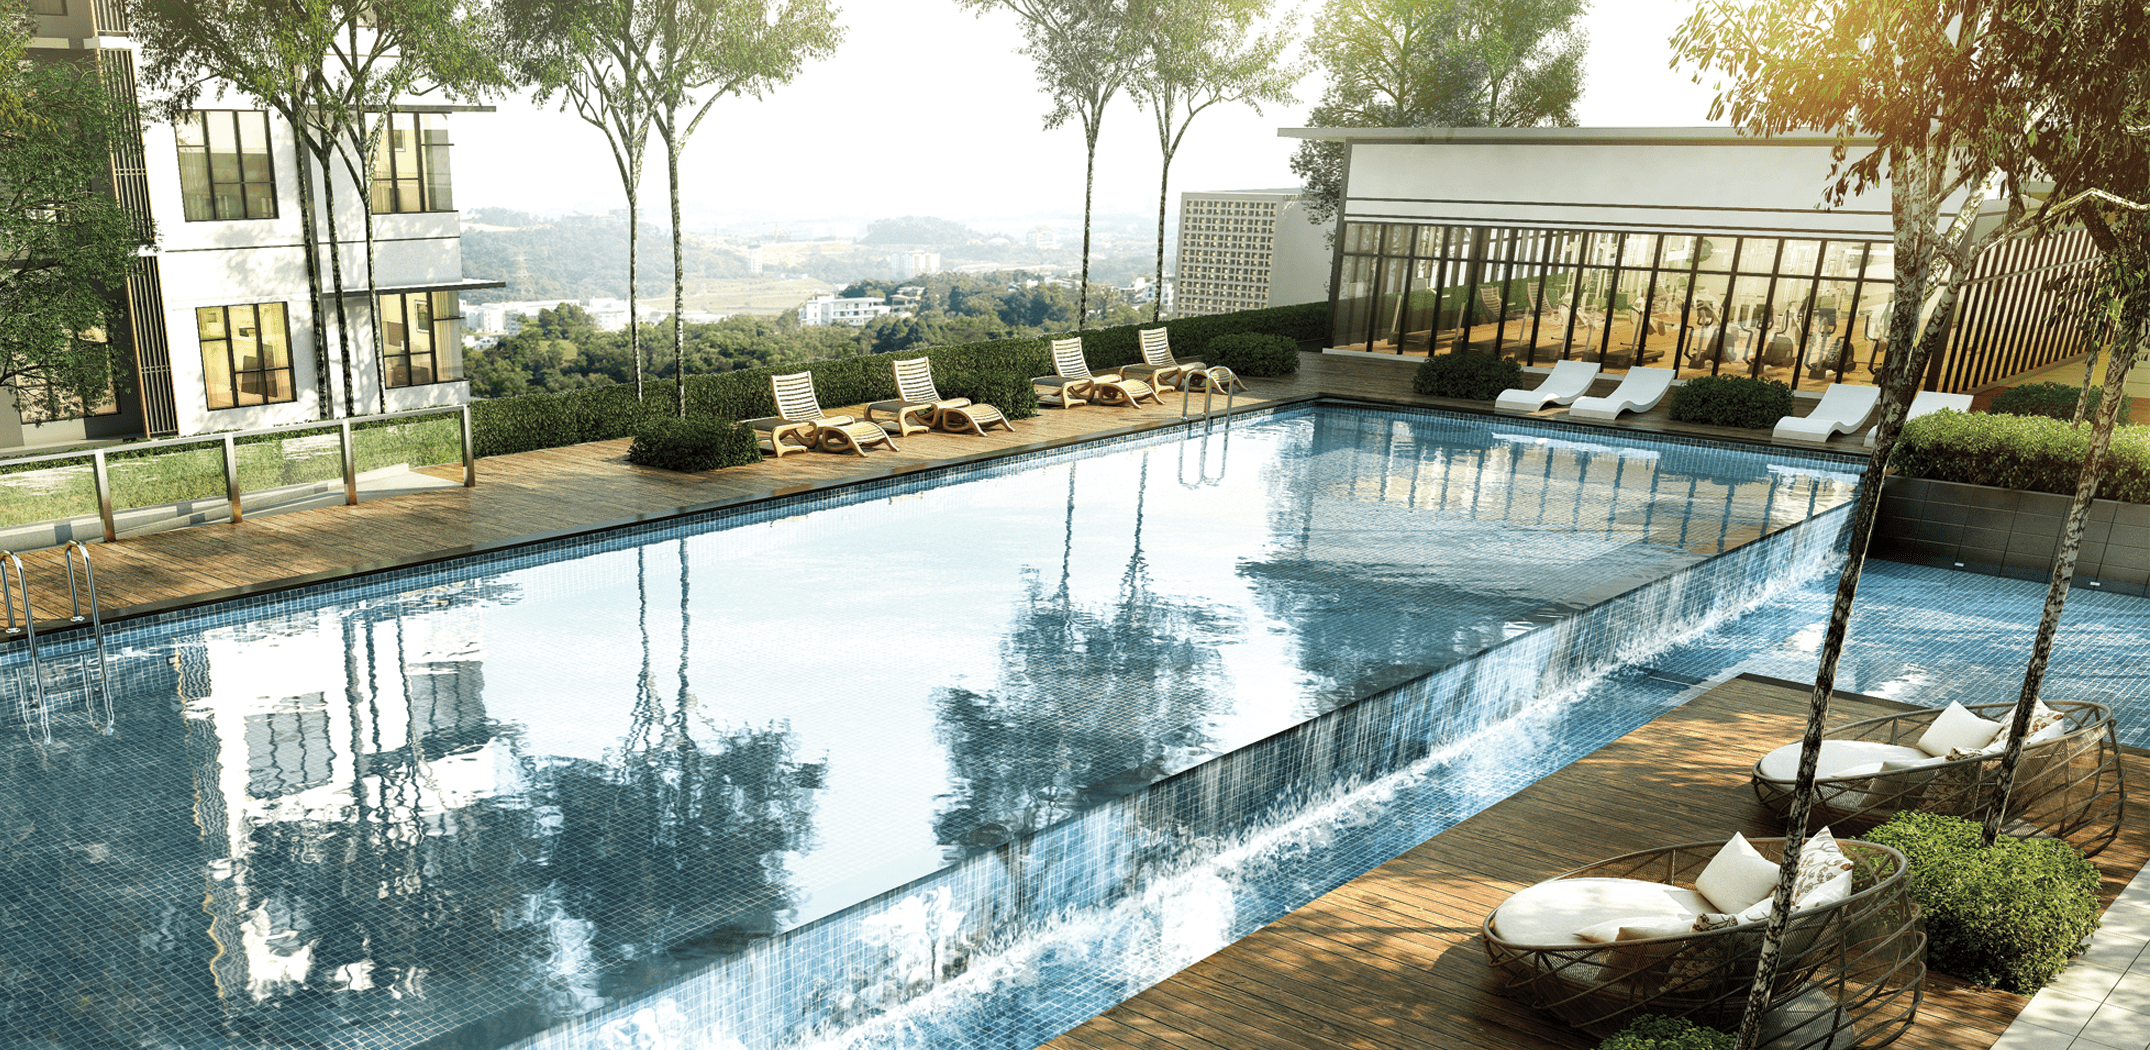 Embayu Residence Damansara West Swimming Pool